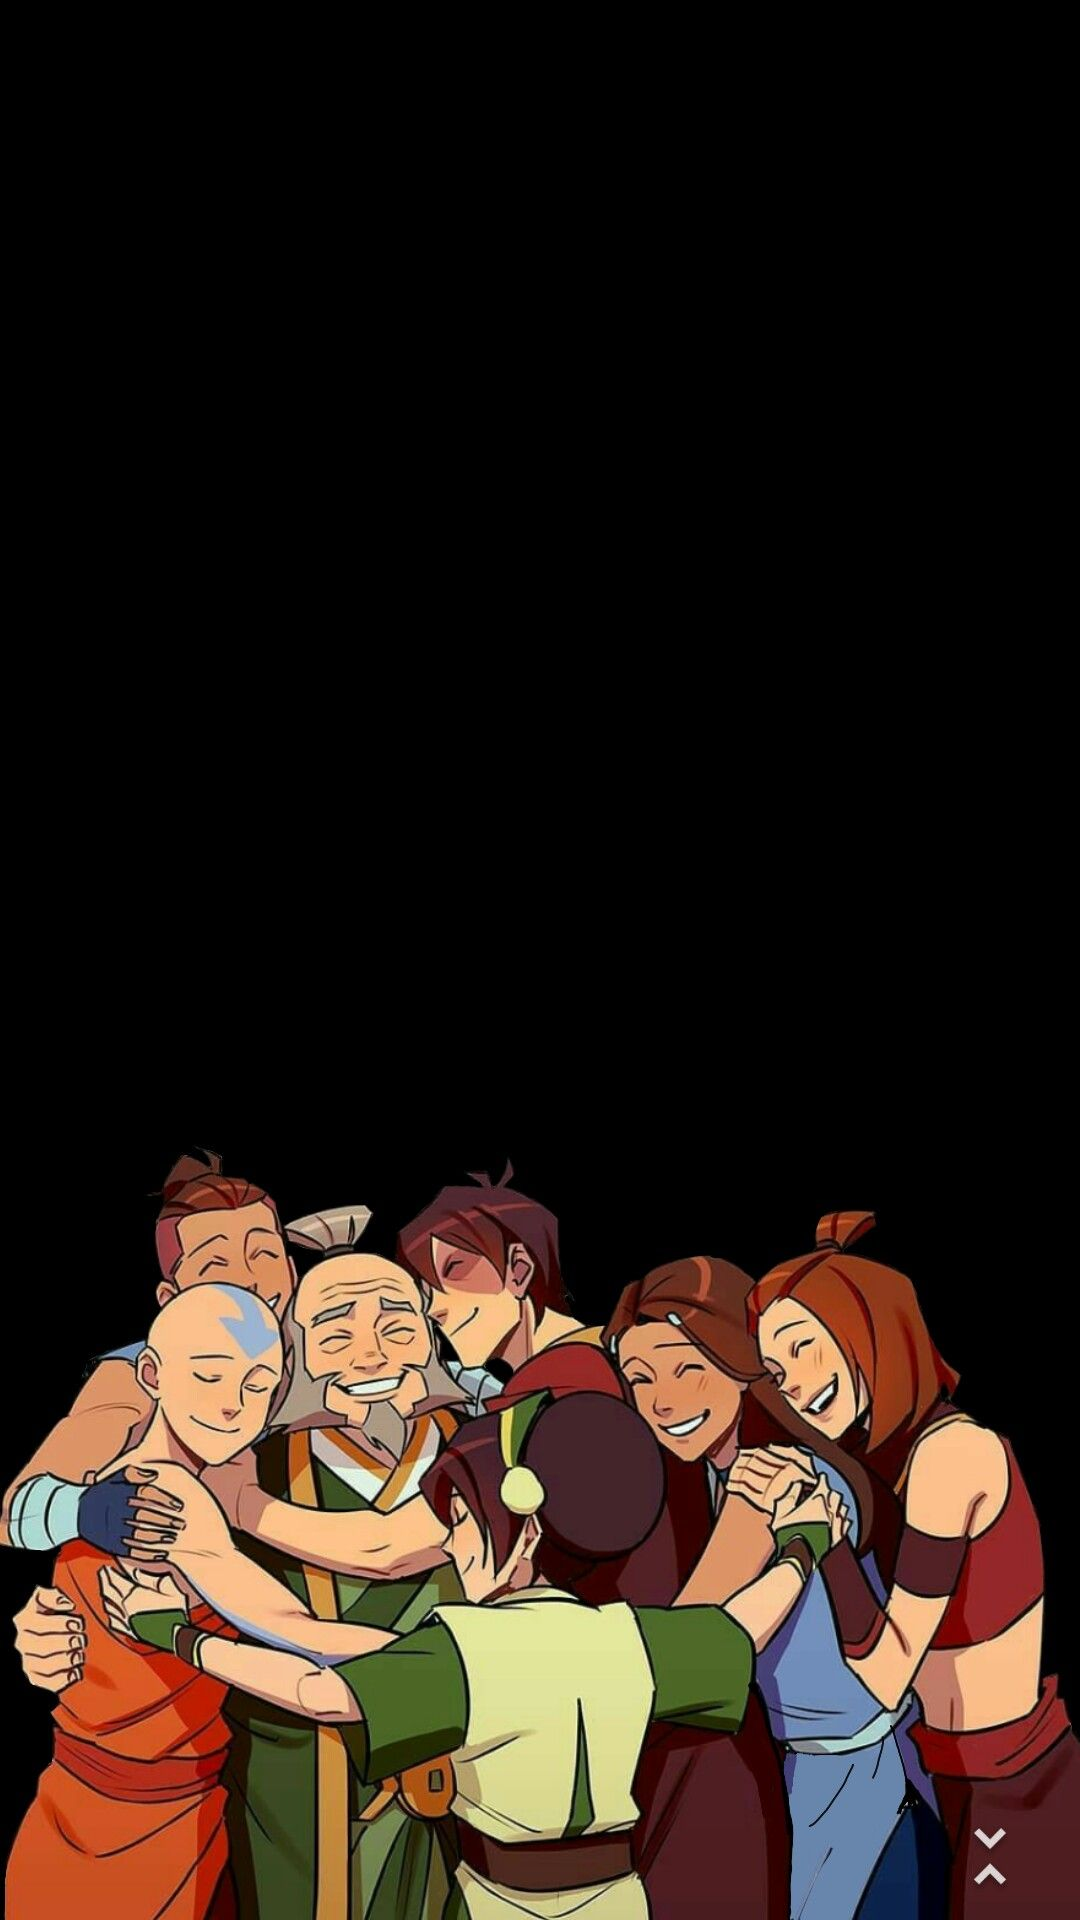 Team Avatar And Uncle Iroh In 2020 Avatar Cartoon Avatar Airbender Avatar Legend Of Aang